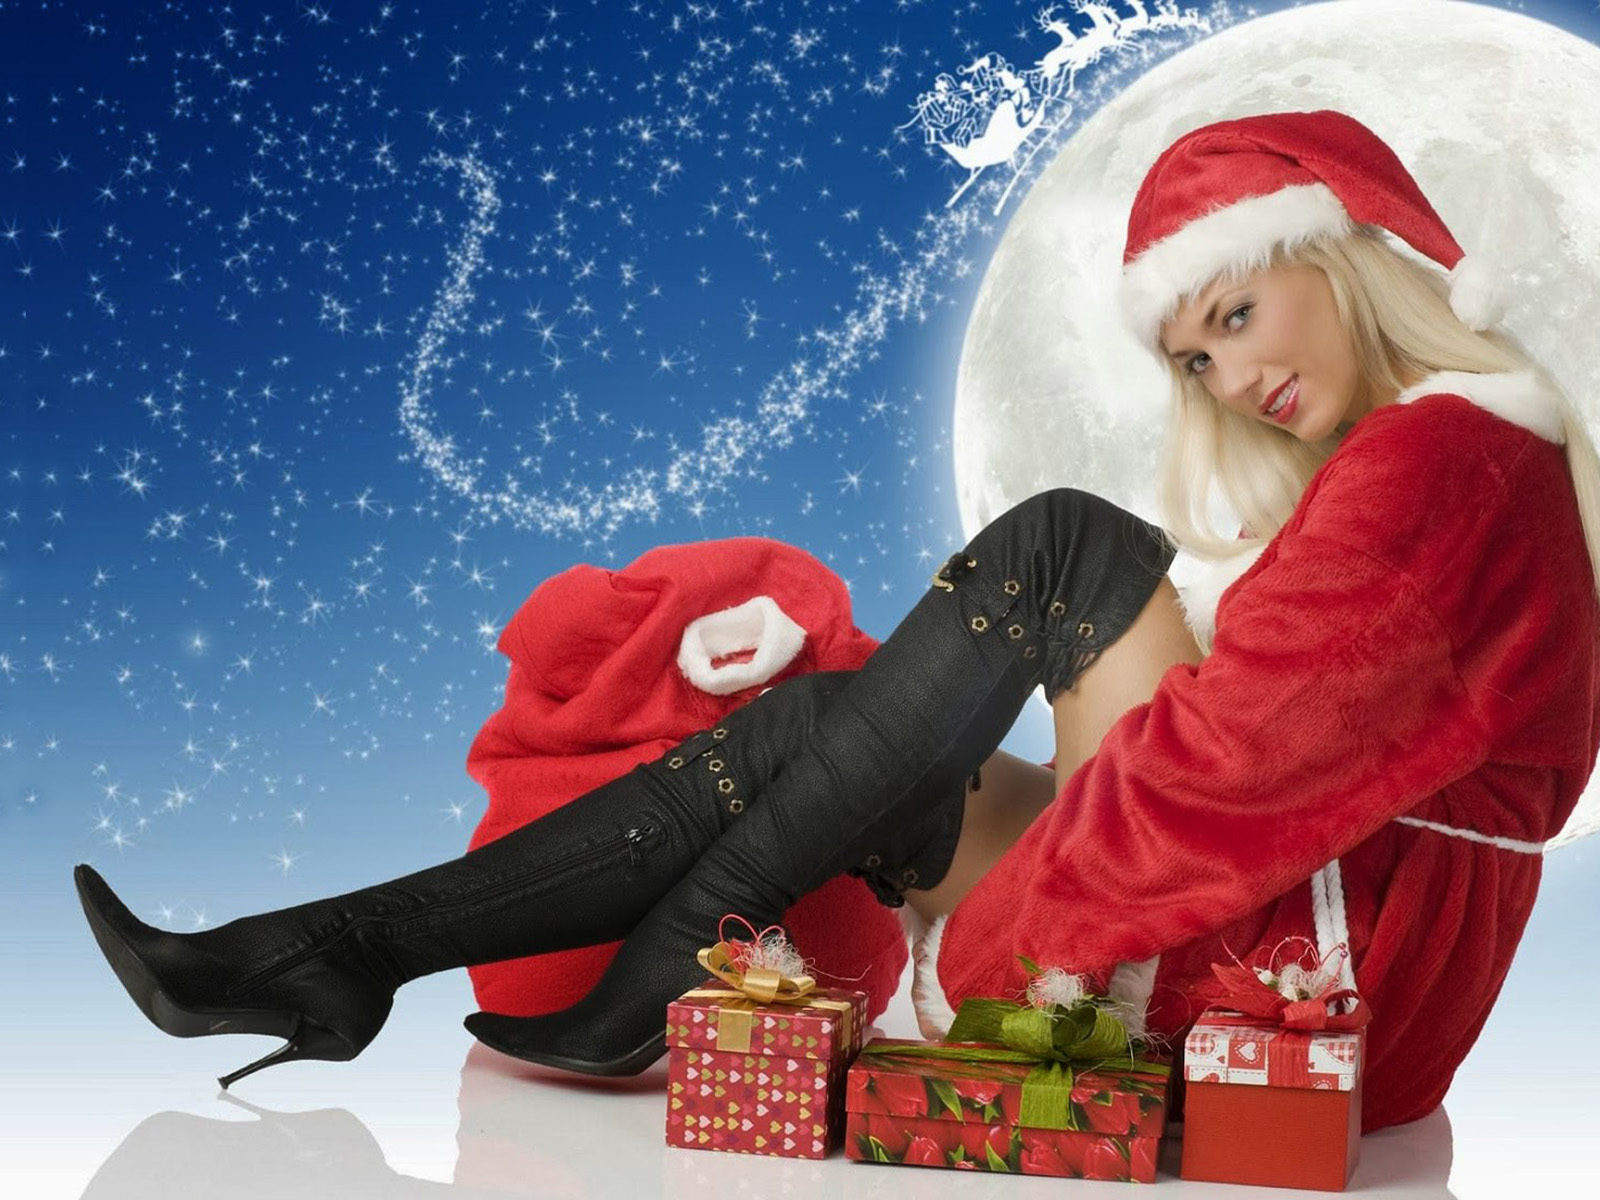 Happy New Year Santa Claus Girl Hd Wallpaper 1920x1200